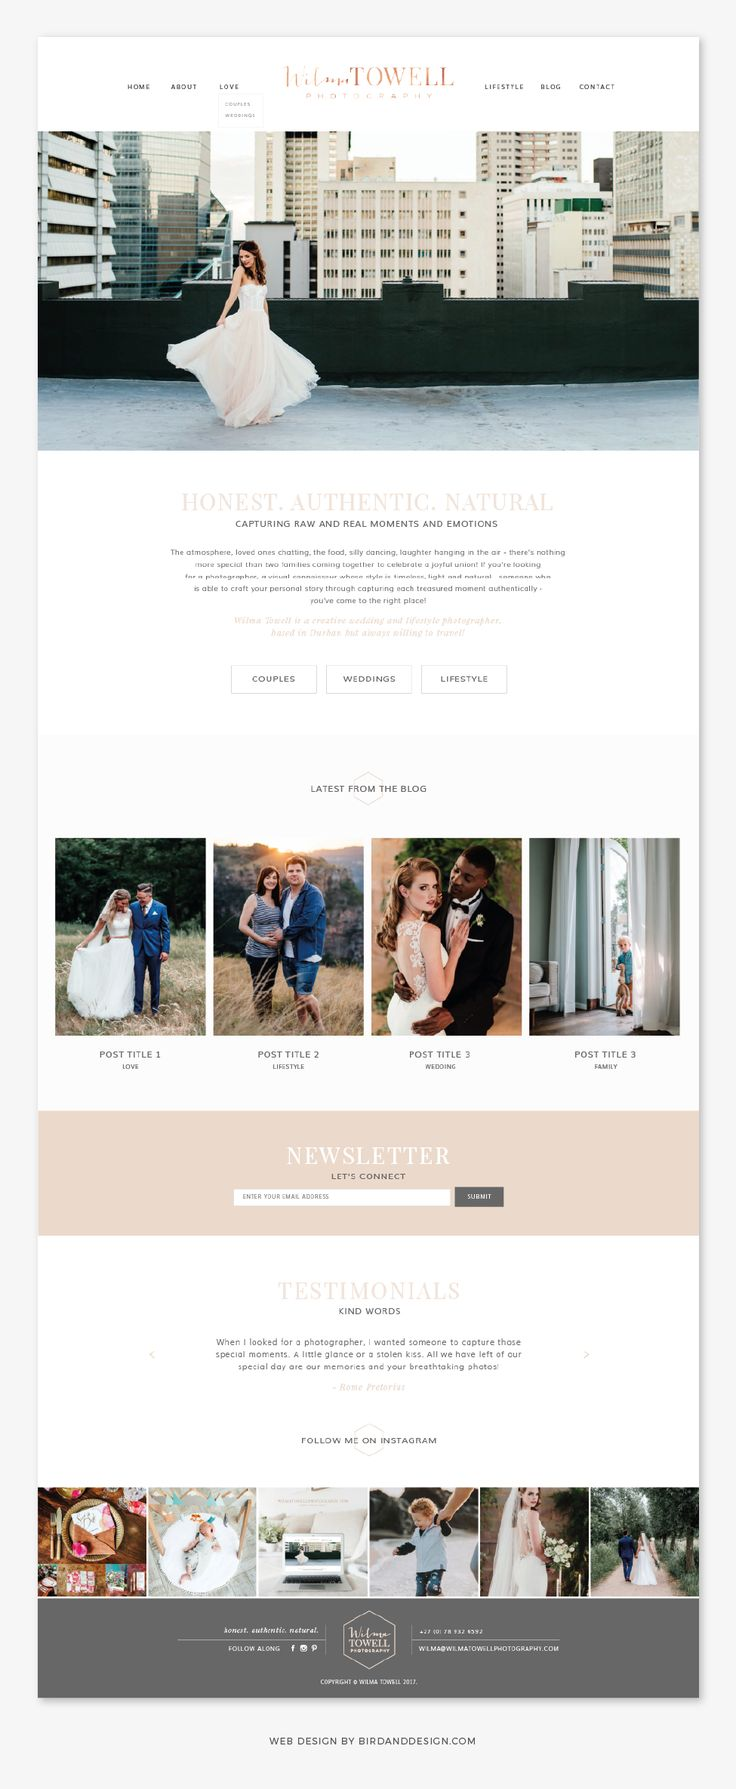 Website Design: Wilma Towell Photography